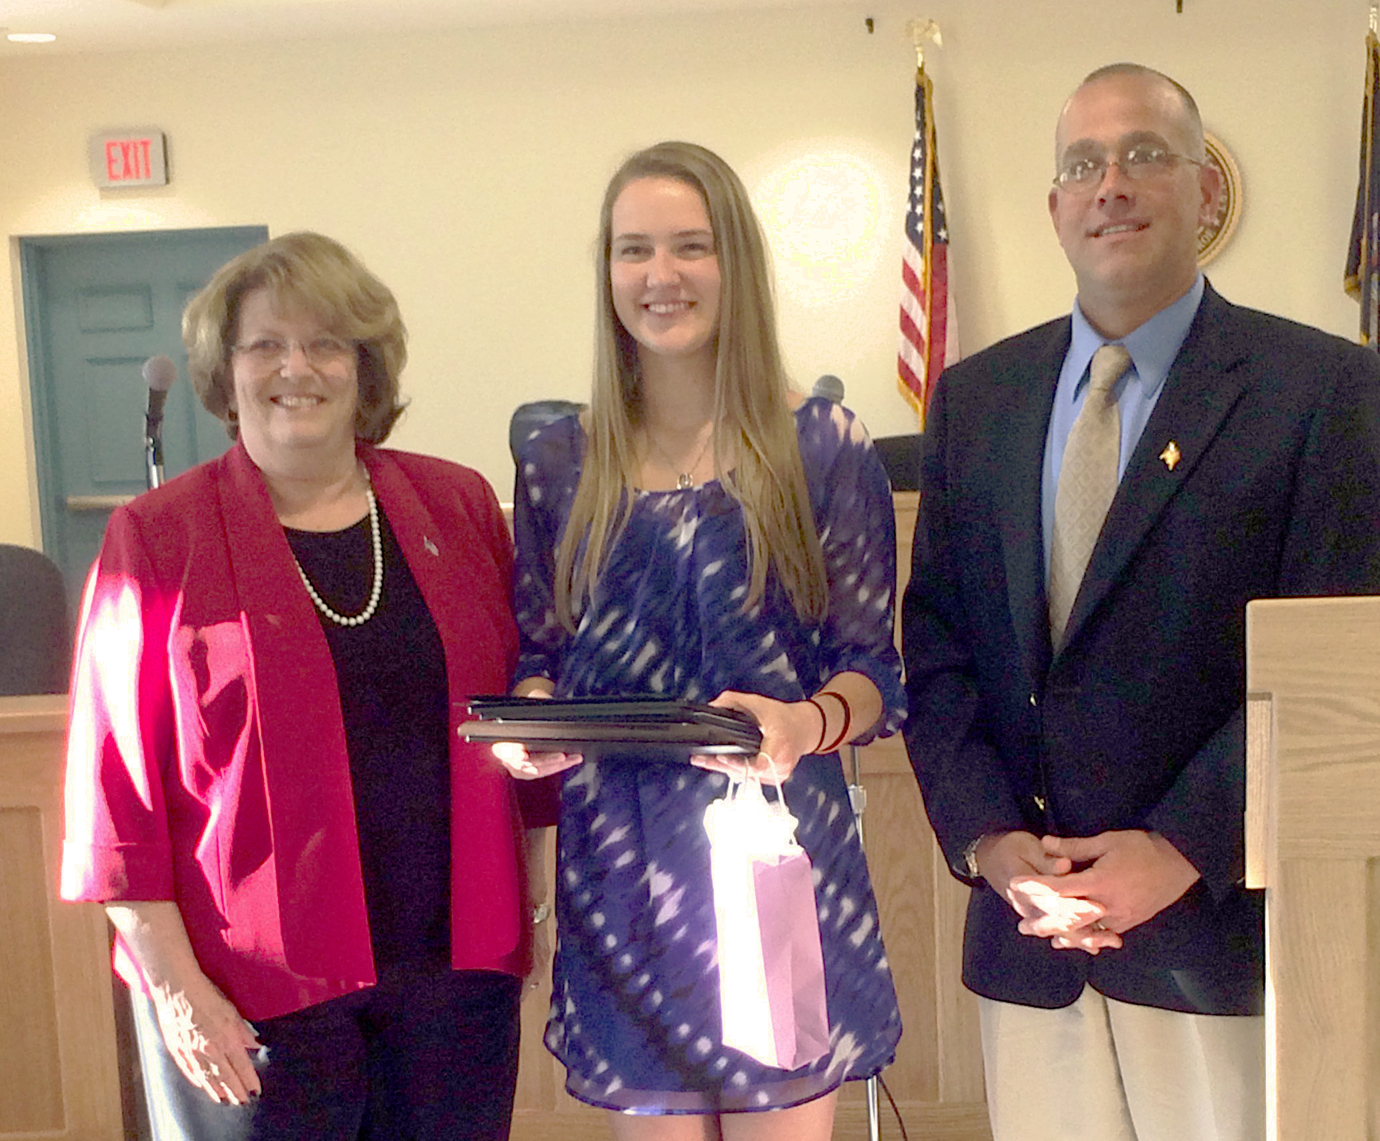 Pictured (left to right): Churchville Mayor Nancy Steedman, 2017 Youth Hall of Fame recipient Jenna Kittle and Riga Town Supervisor Brad O'Brocta. Provided photo